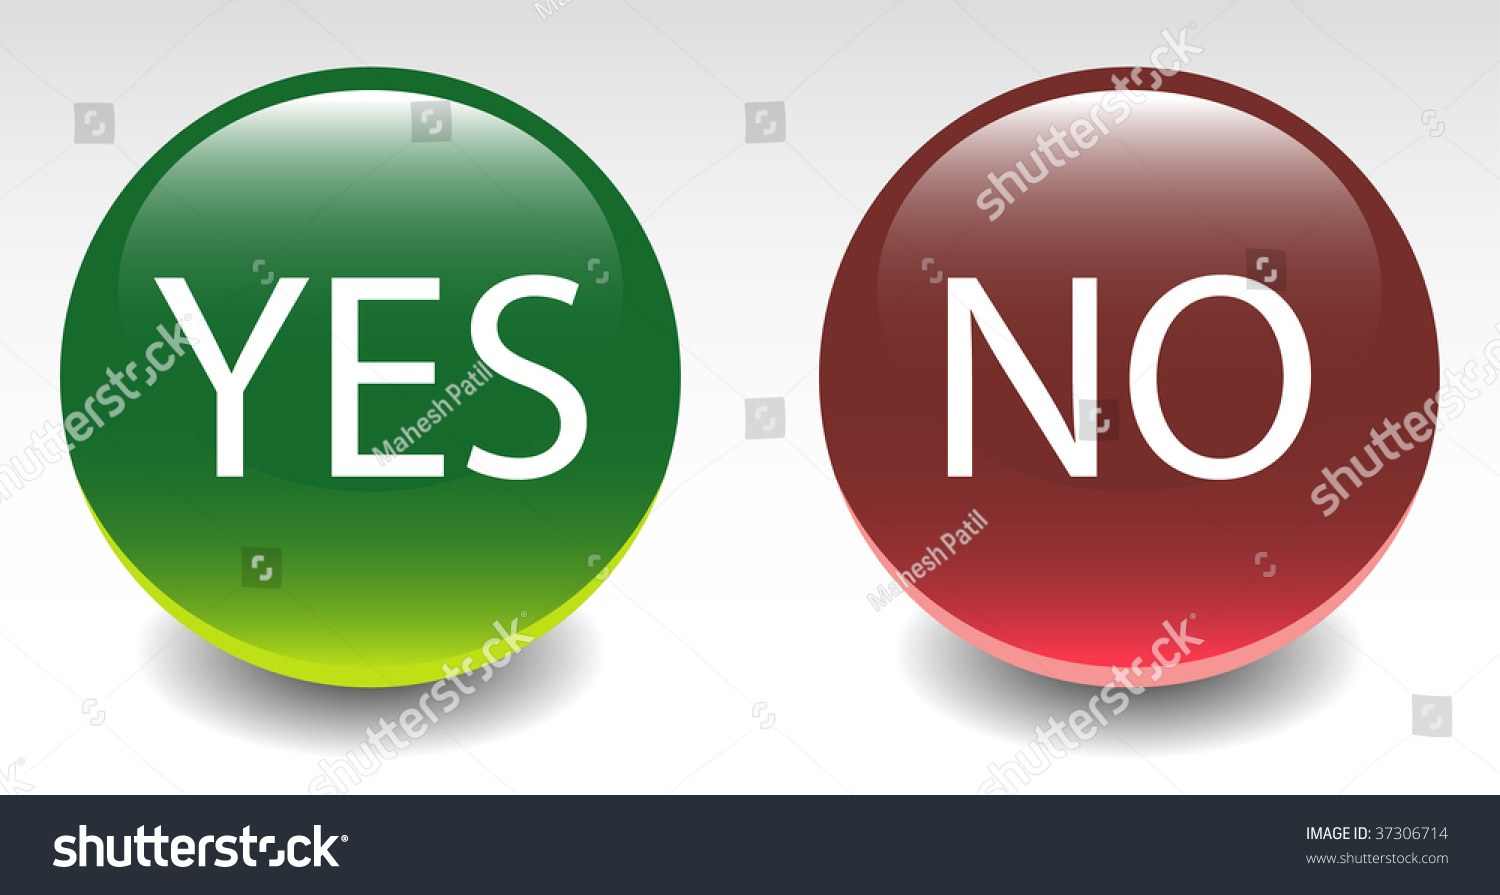 Yes & No Sign Icon Buttons Stock Vector Illustration